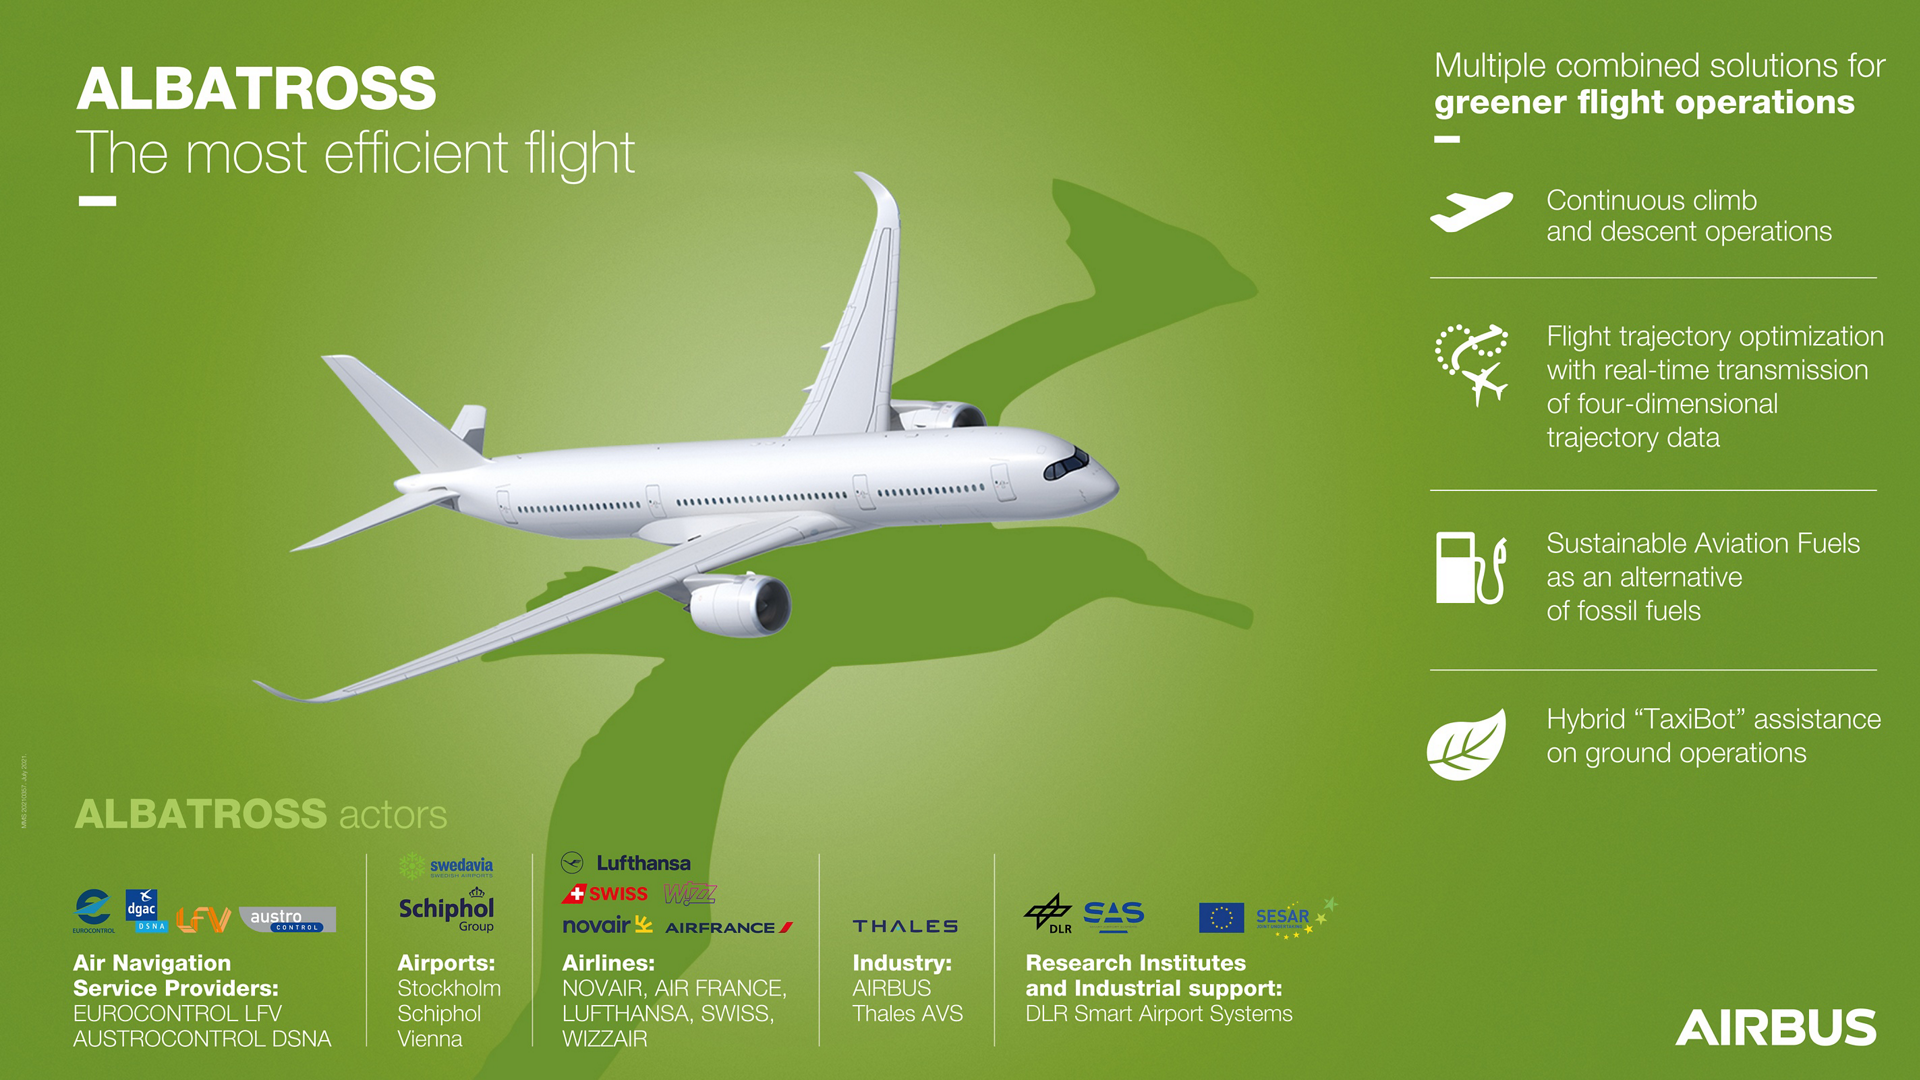 With the launch of ALBATROSS, a 2 year SESAR project aiming to implement the most efficient flight, Airbus is taking a further step to meet its commitment to pioneer a sustainable future.